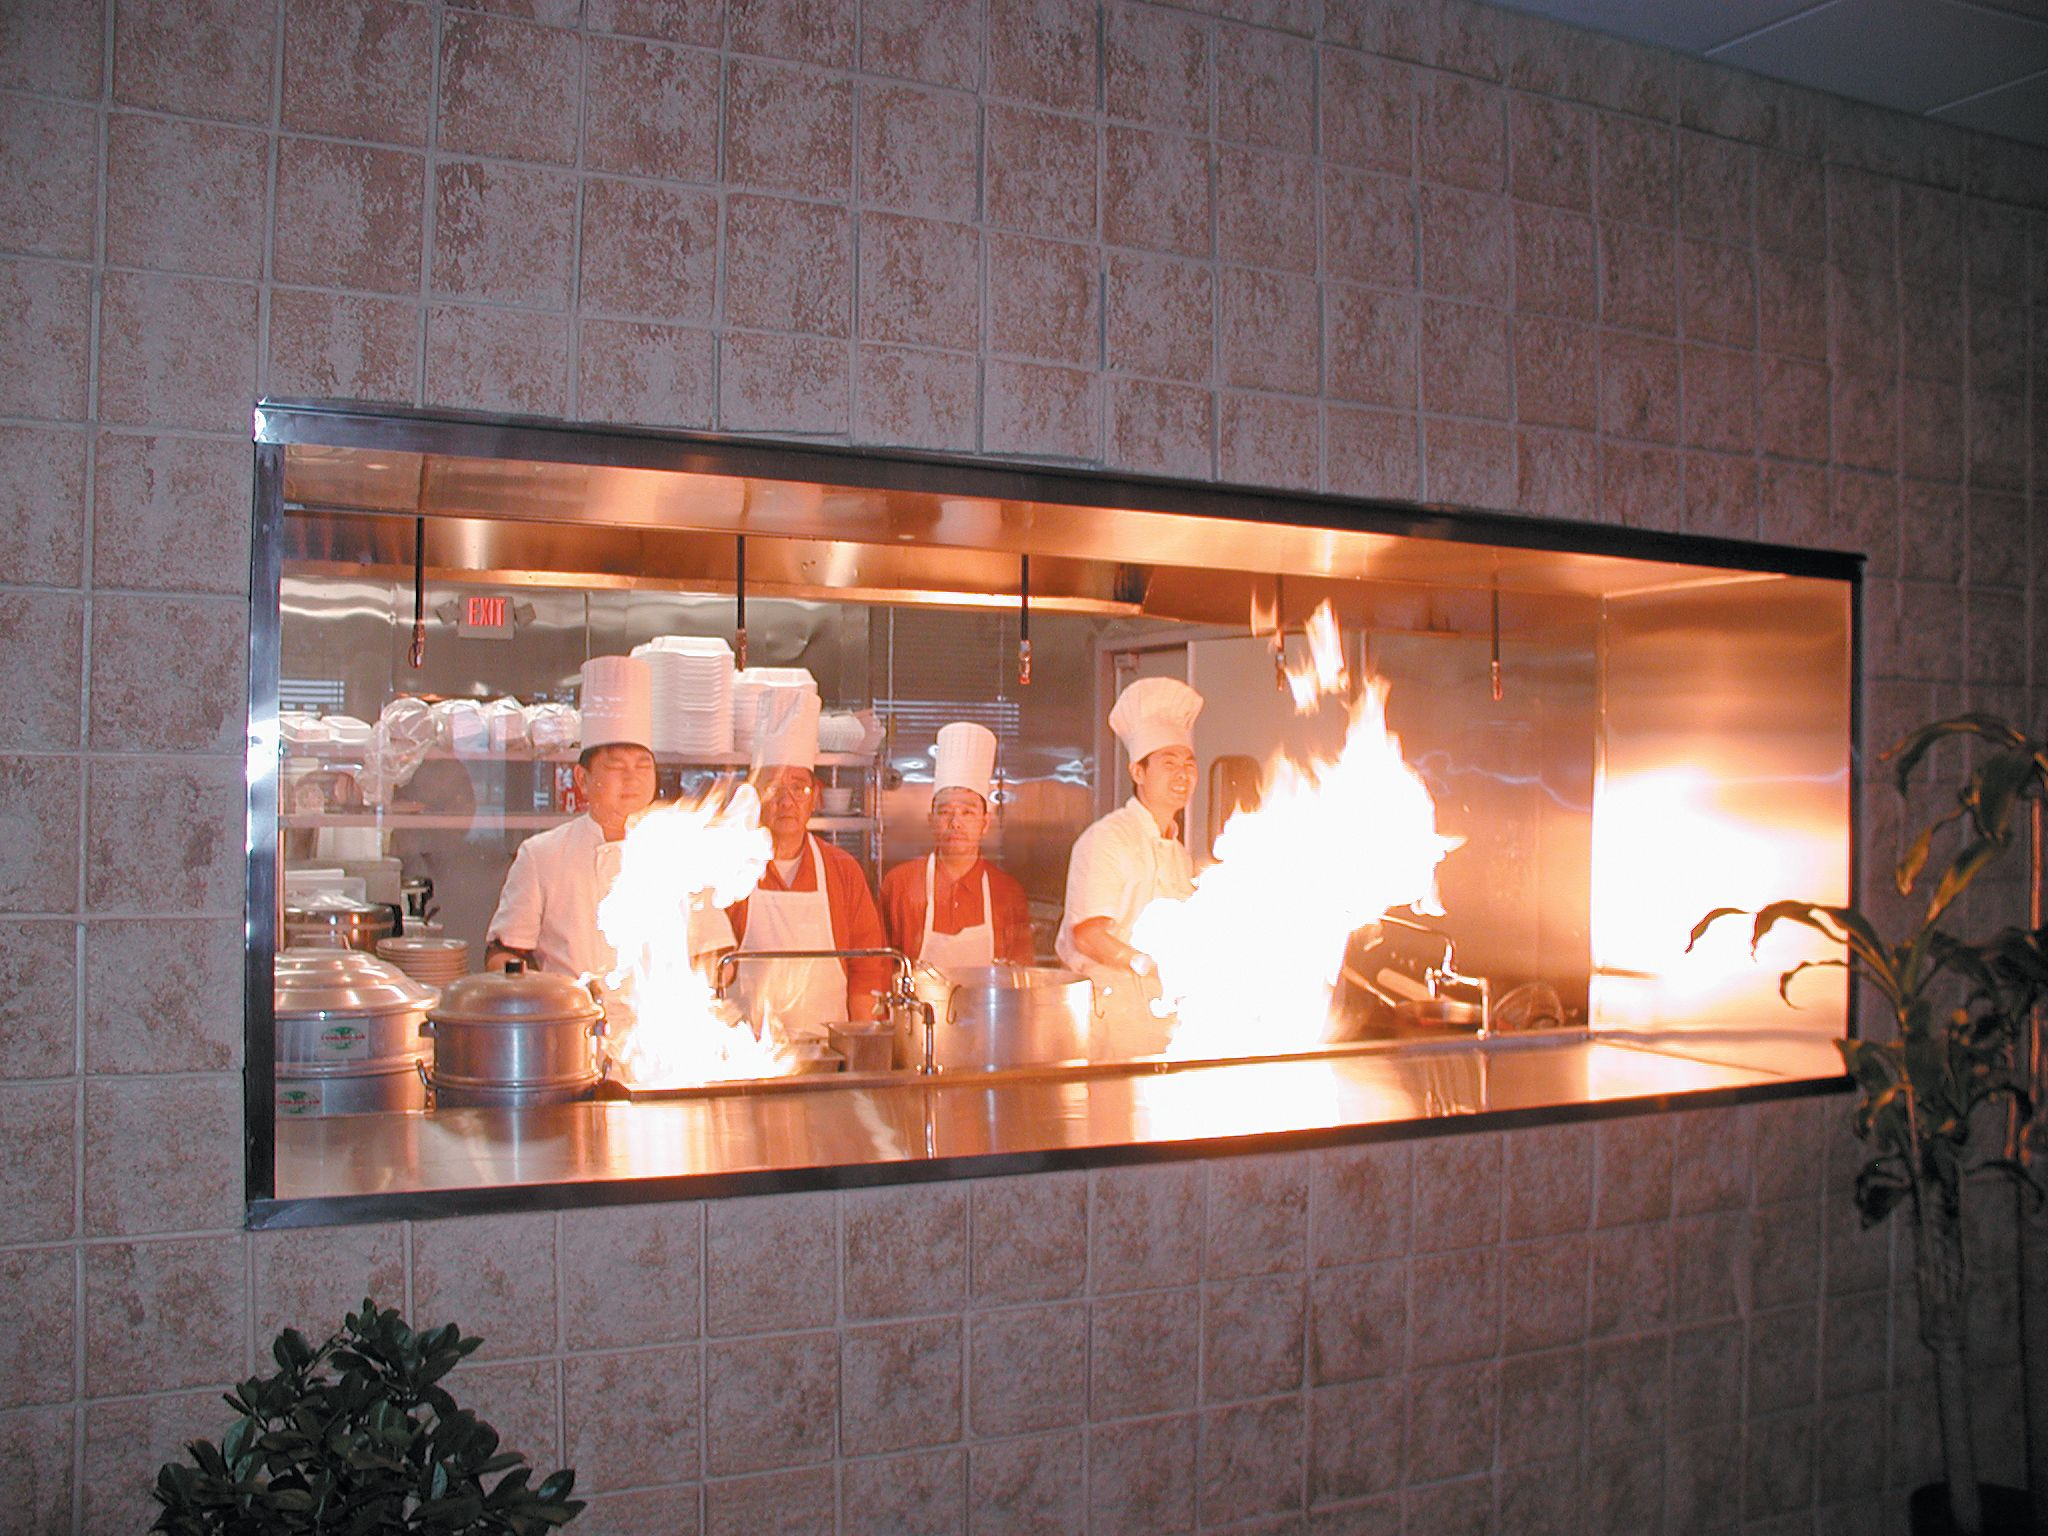 Restaurant Kitchen Window contemporary restaurant kitchen window back wall i inside design